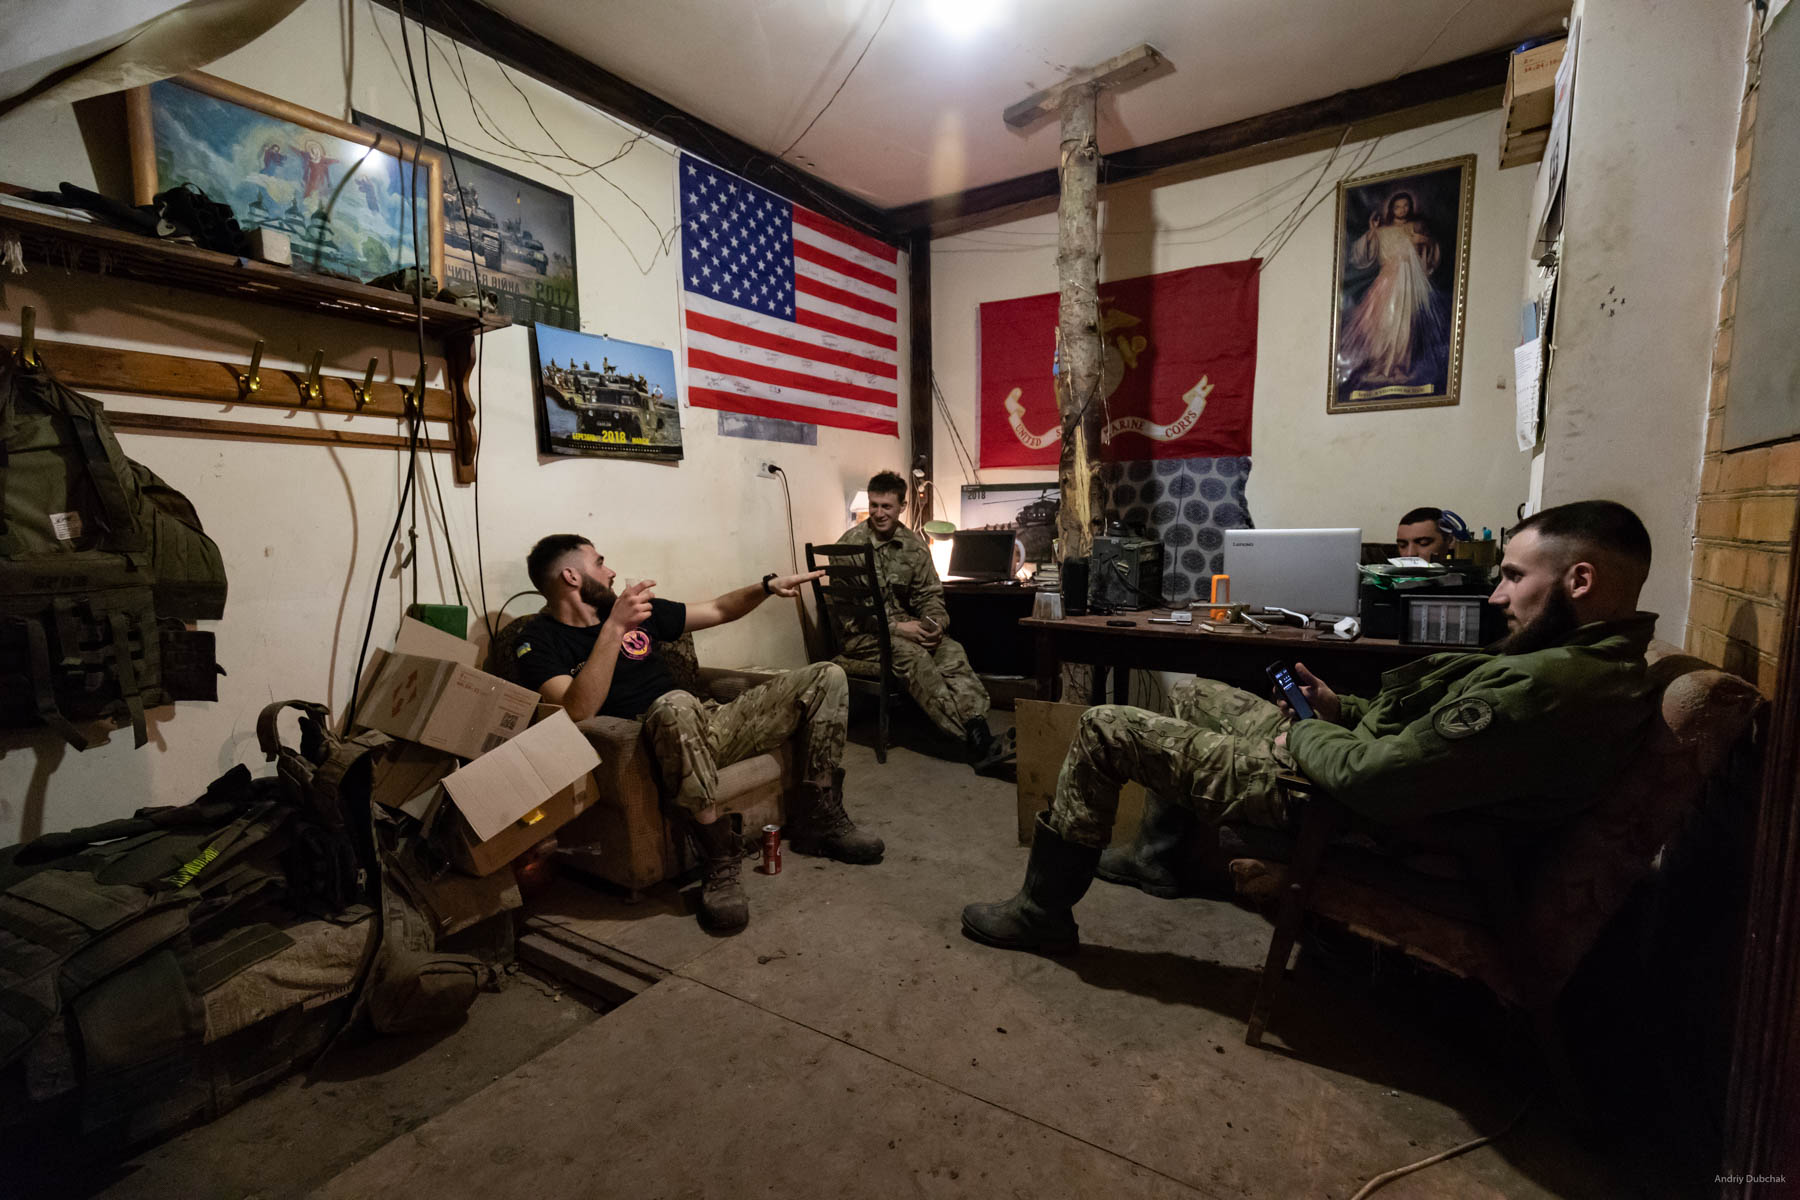 Marines converse in one of the basements in Vodyane. In the background, there is a portion of the US flag can be seen, donated by the American Marines to the Ukrainian ones, during joint exercises. The photo was taken in March, during our next visit in June, this house was gone. The enemy broke it by his mortars. Fortunately, the first mine that fell next to the house gave time for everyone to jump into the basement. Vodyane, March 2018.